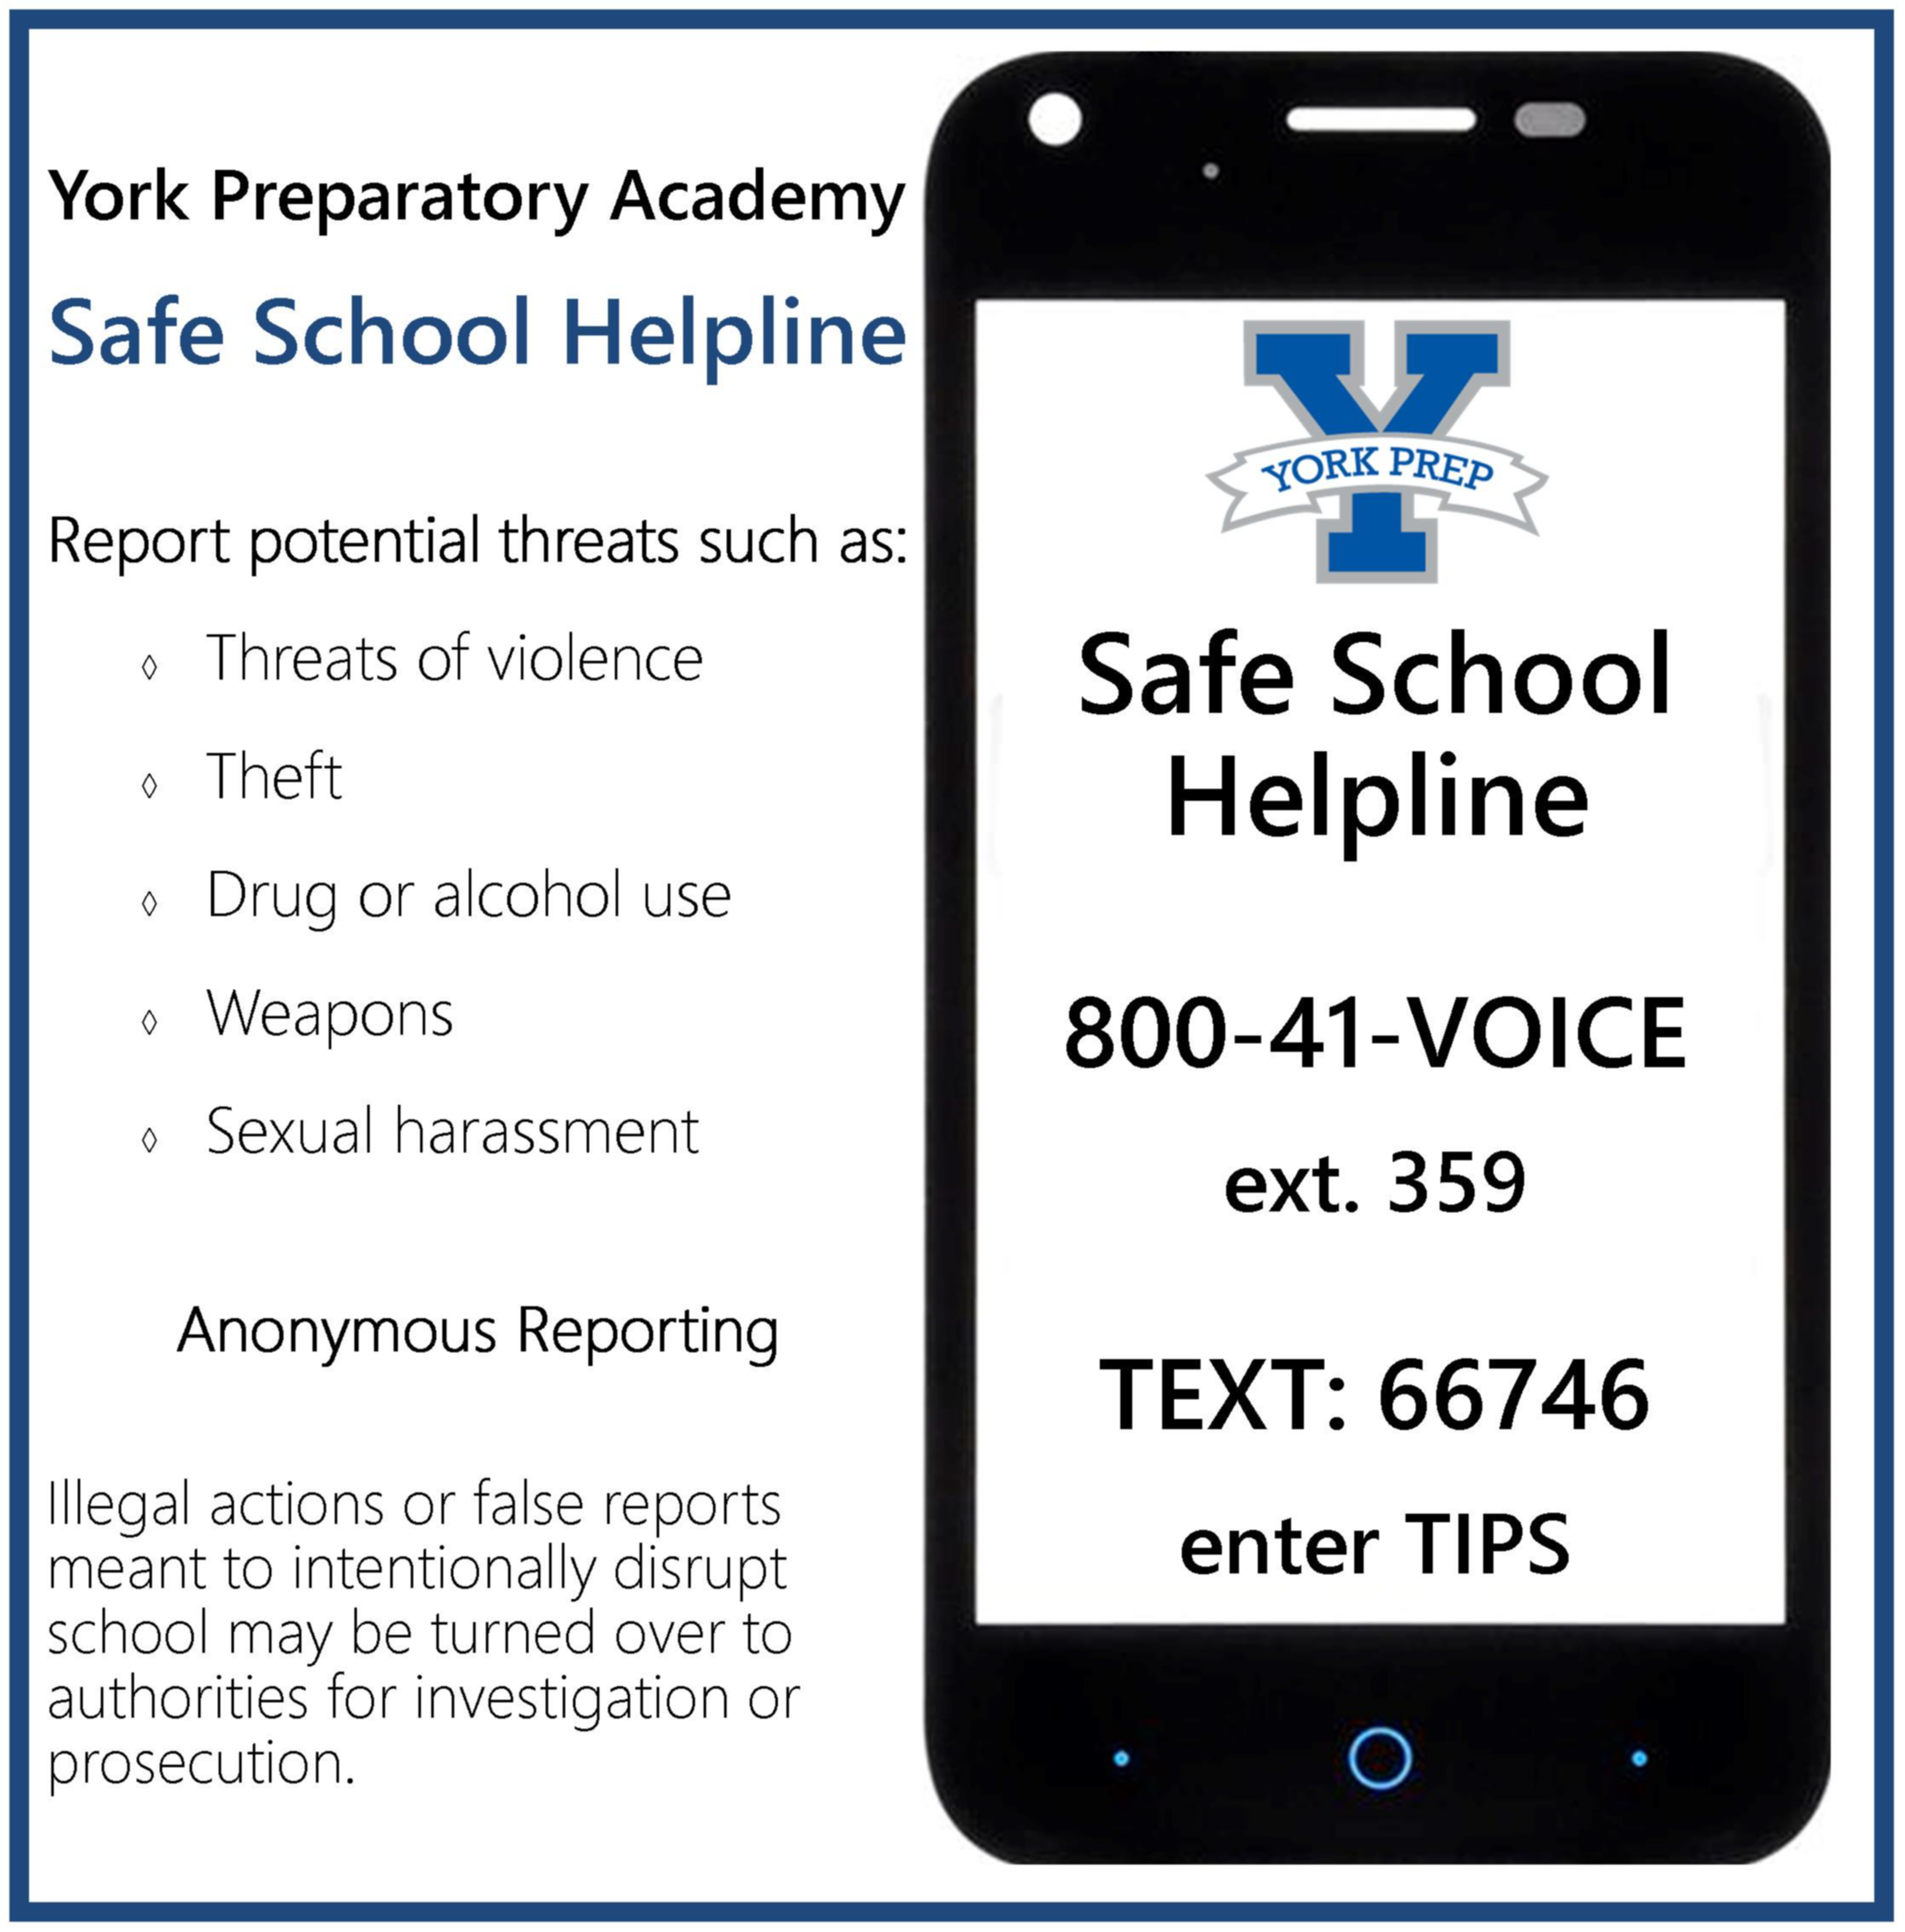 Safe School Helpline image